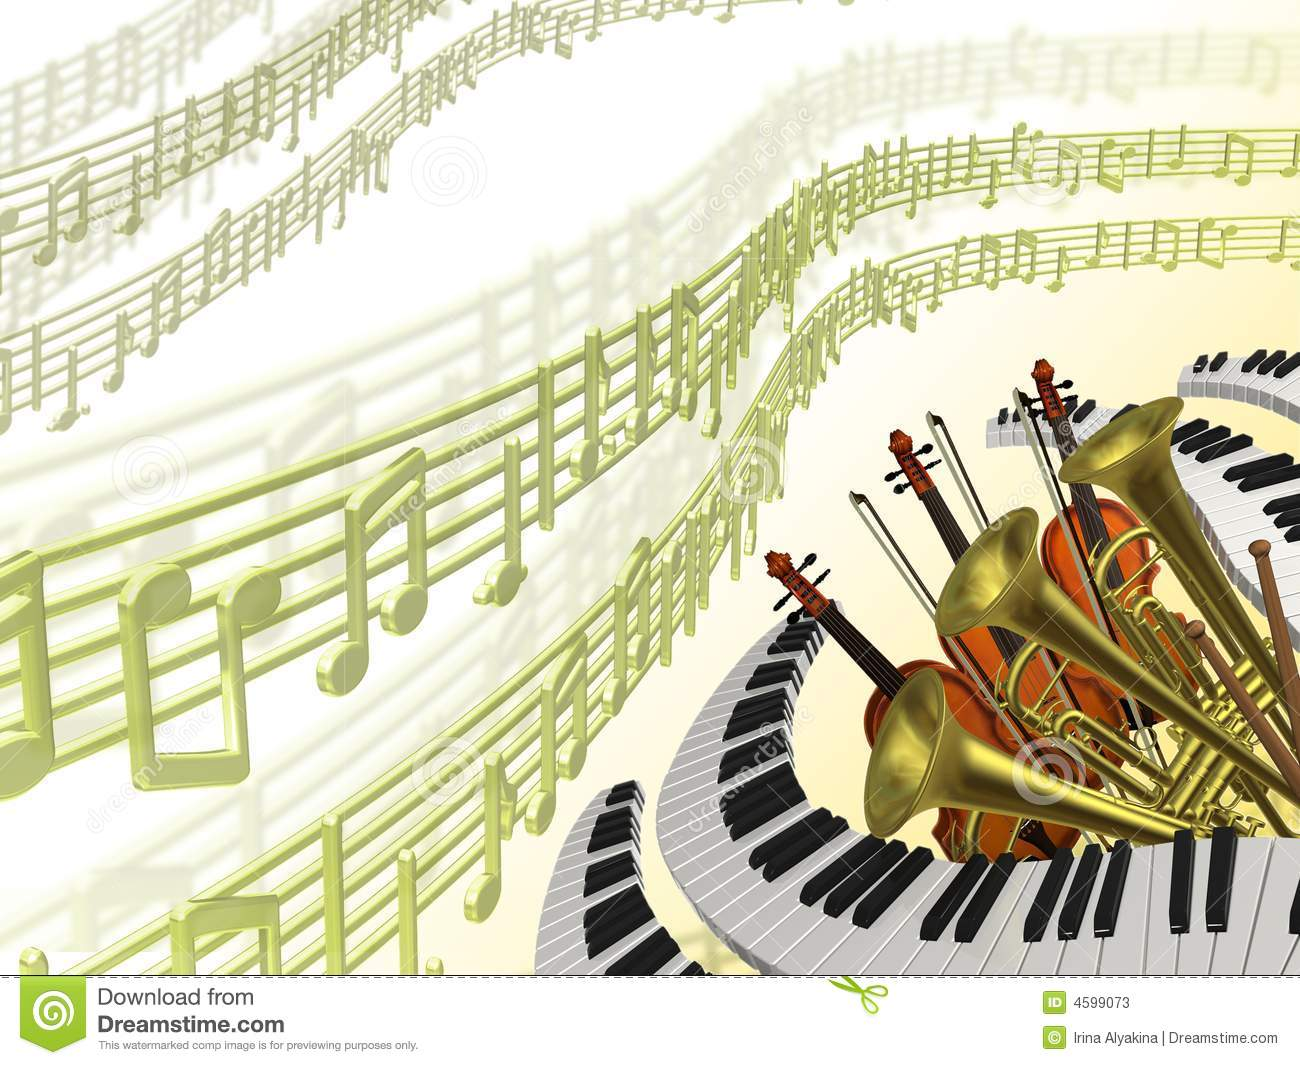 Music Classical Background Stock Photos - Image: 4599073